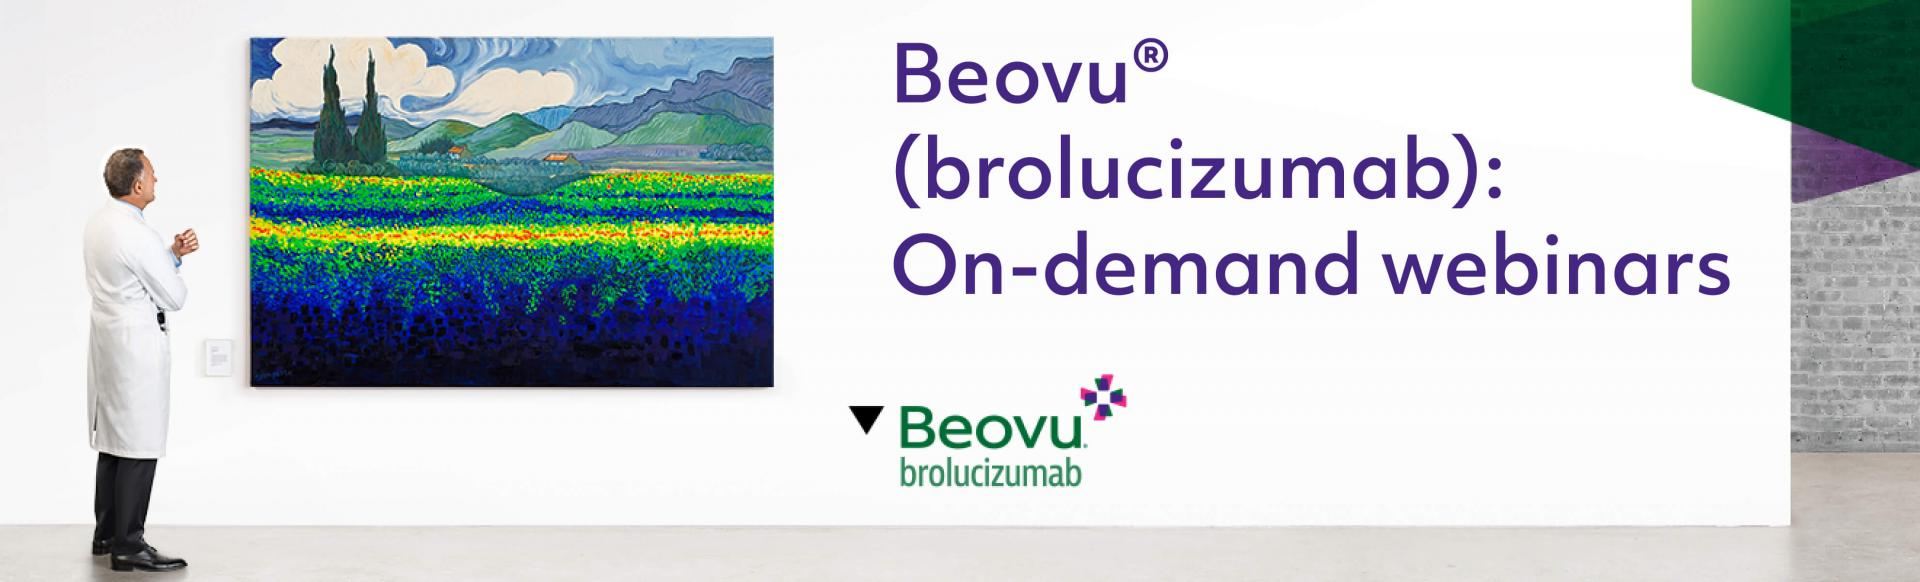 Beovu® (brolucizumab) On-demand webinars